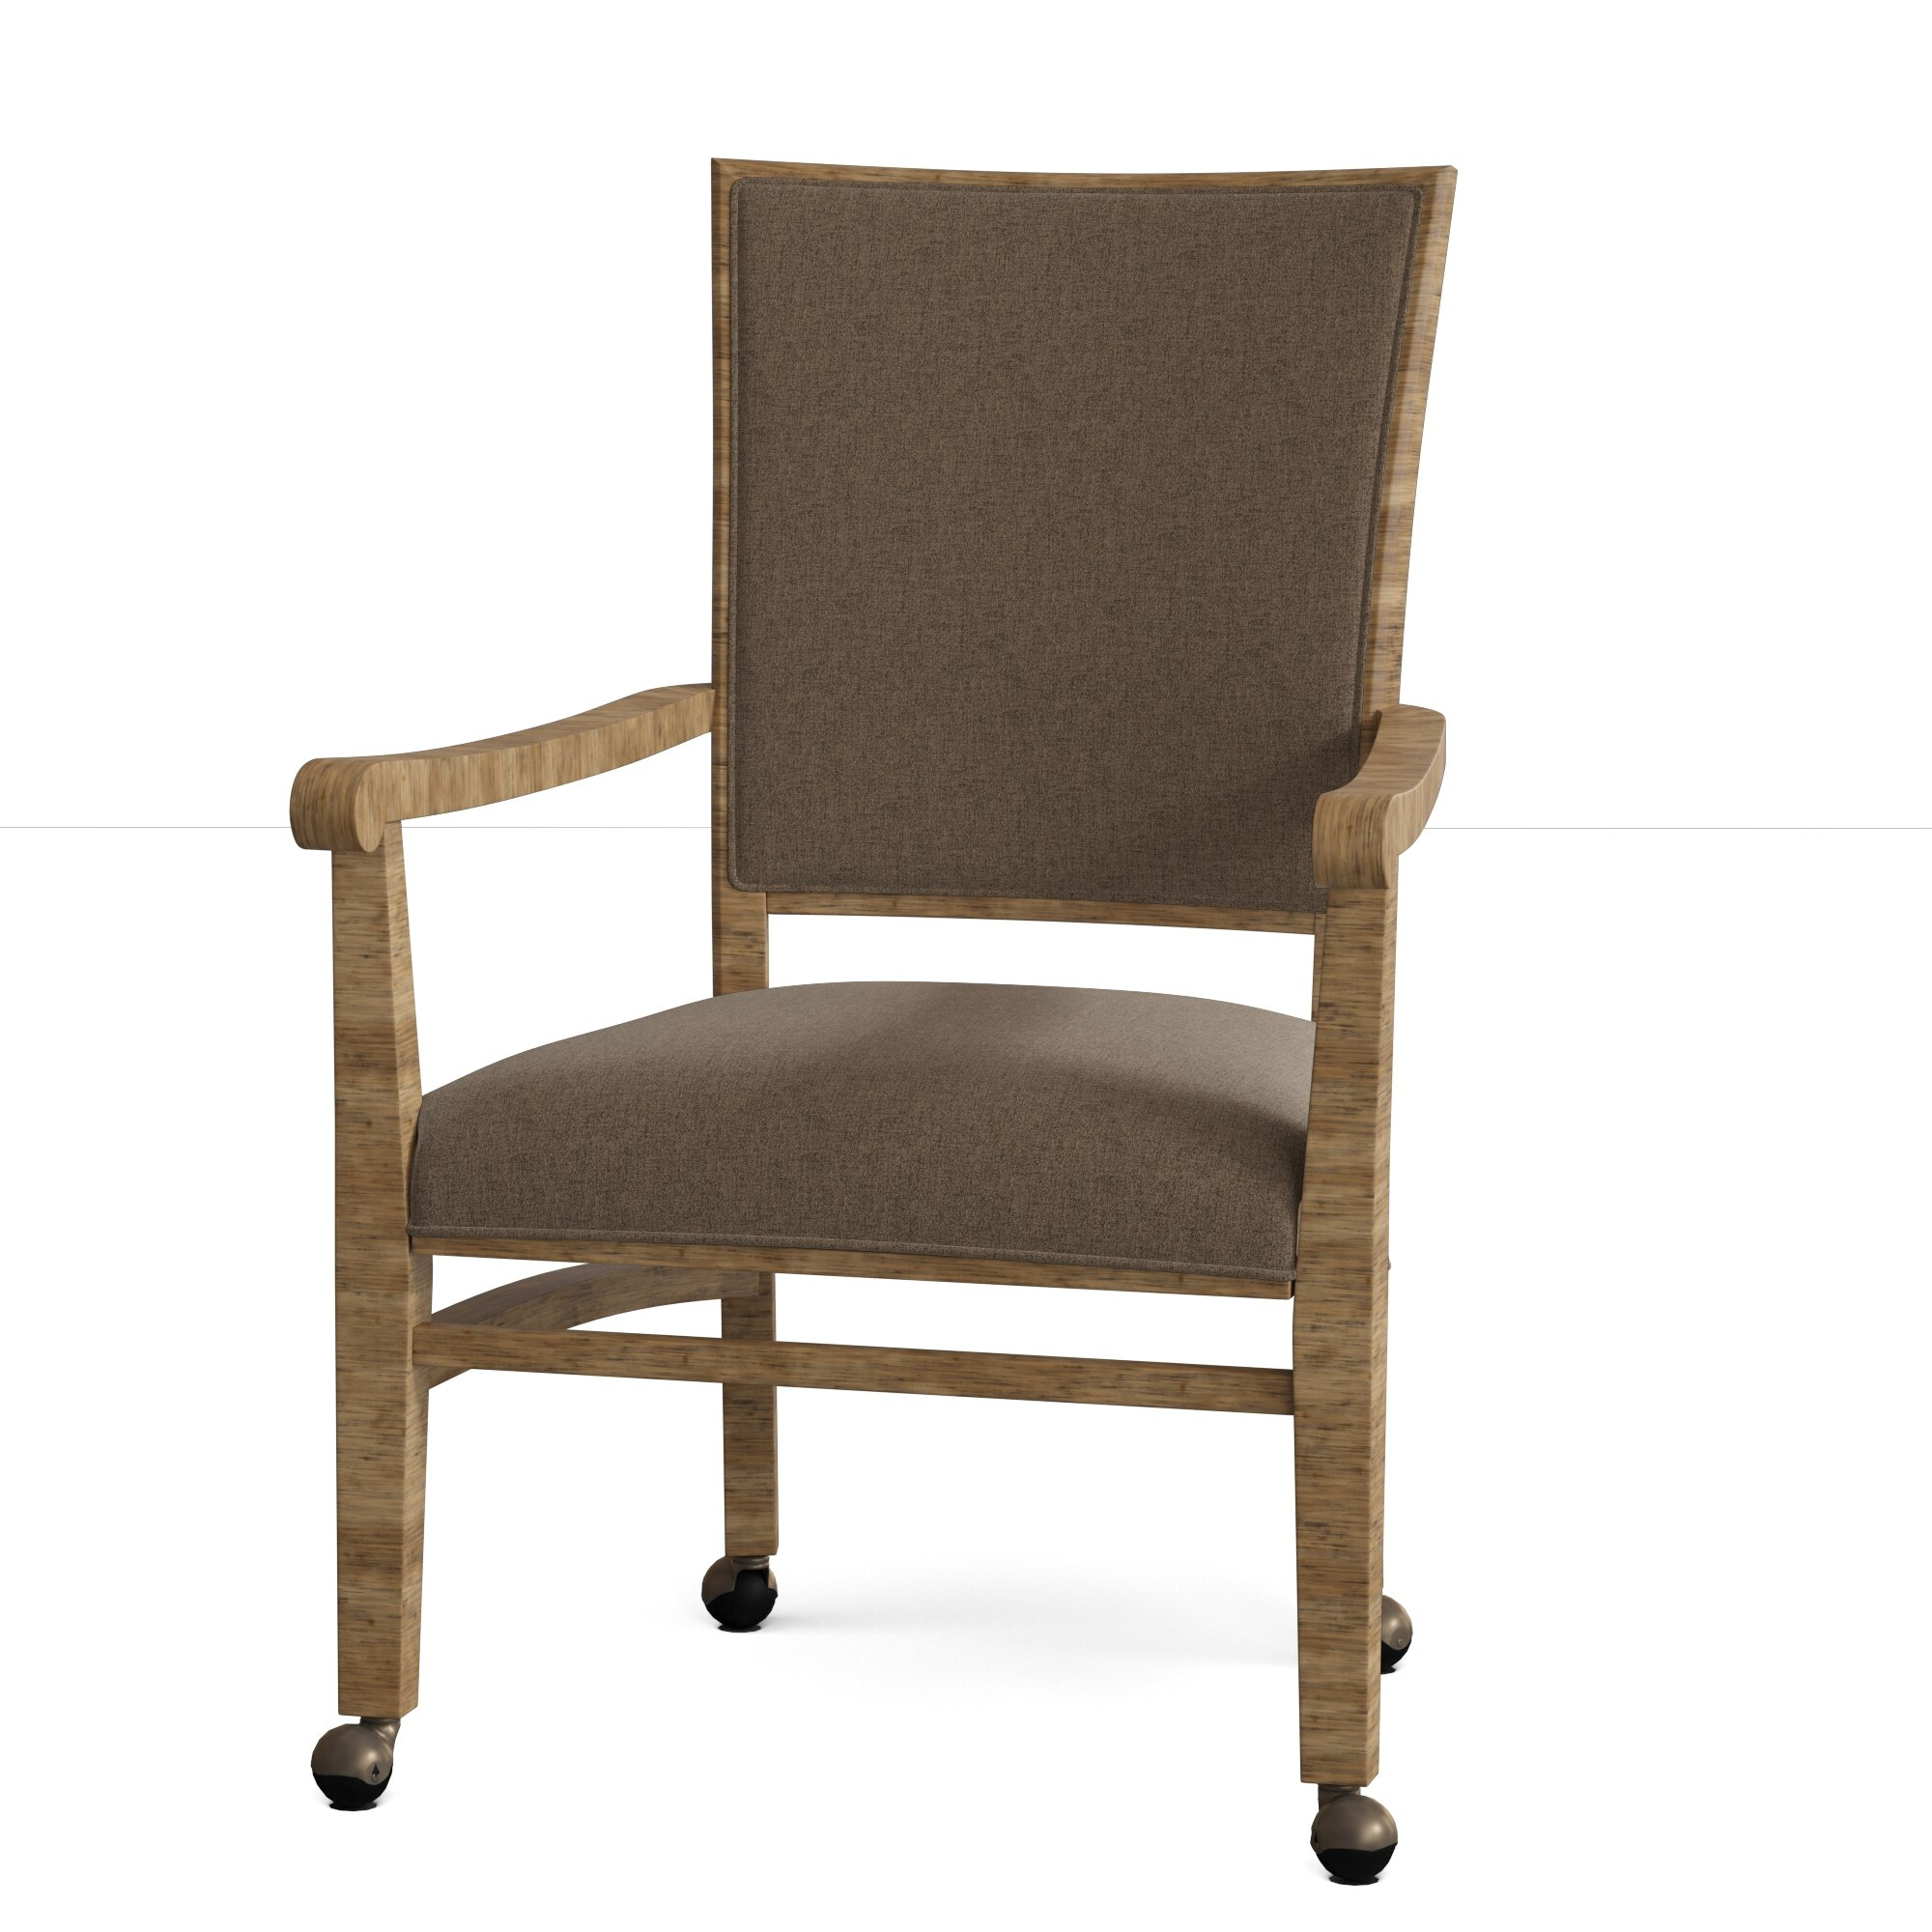 Selby Armchairs Regarding Most Current Selby Upholstered Arm Chair (View 2 of 20)